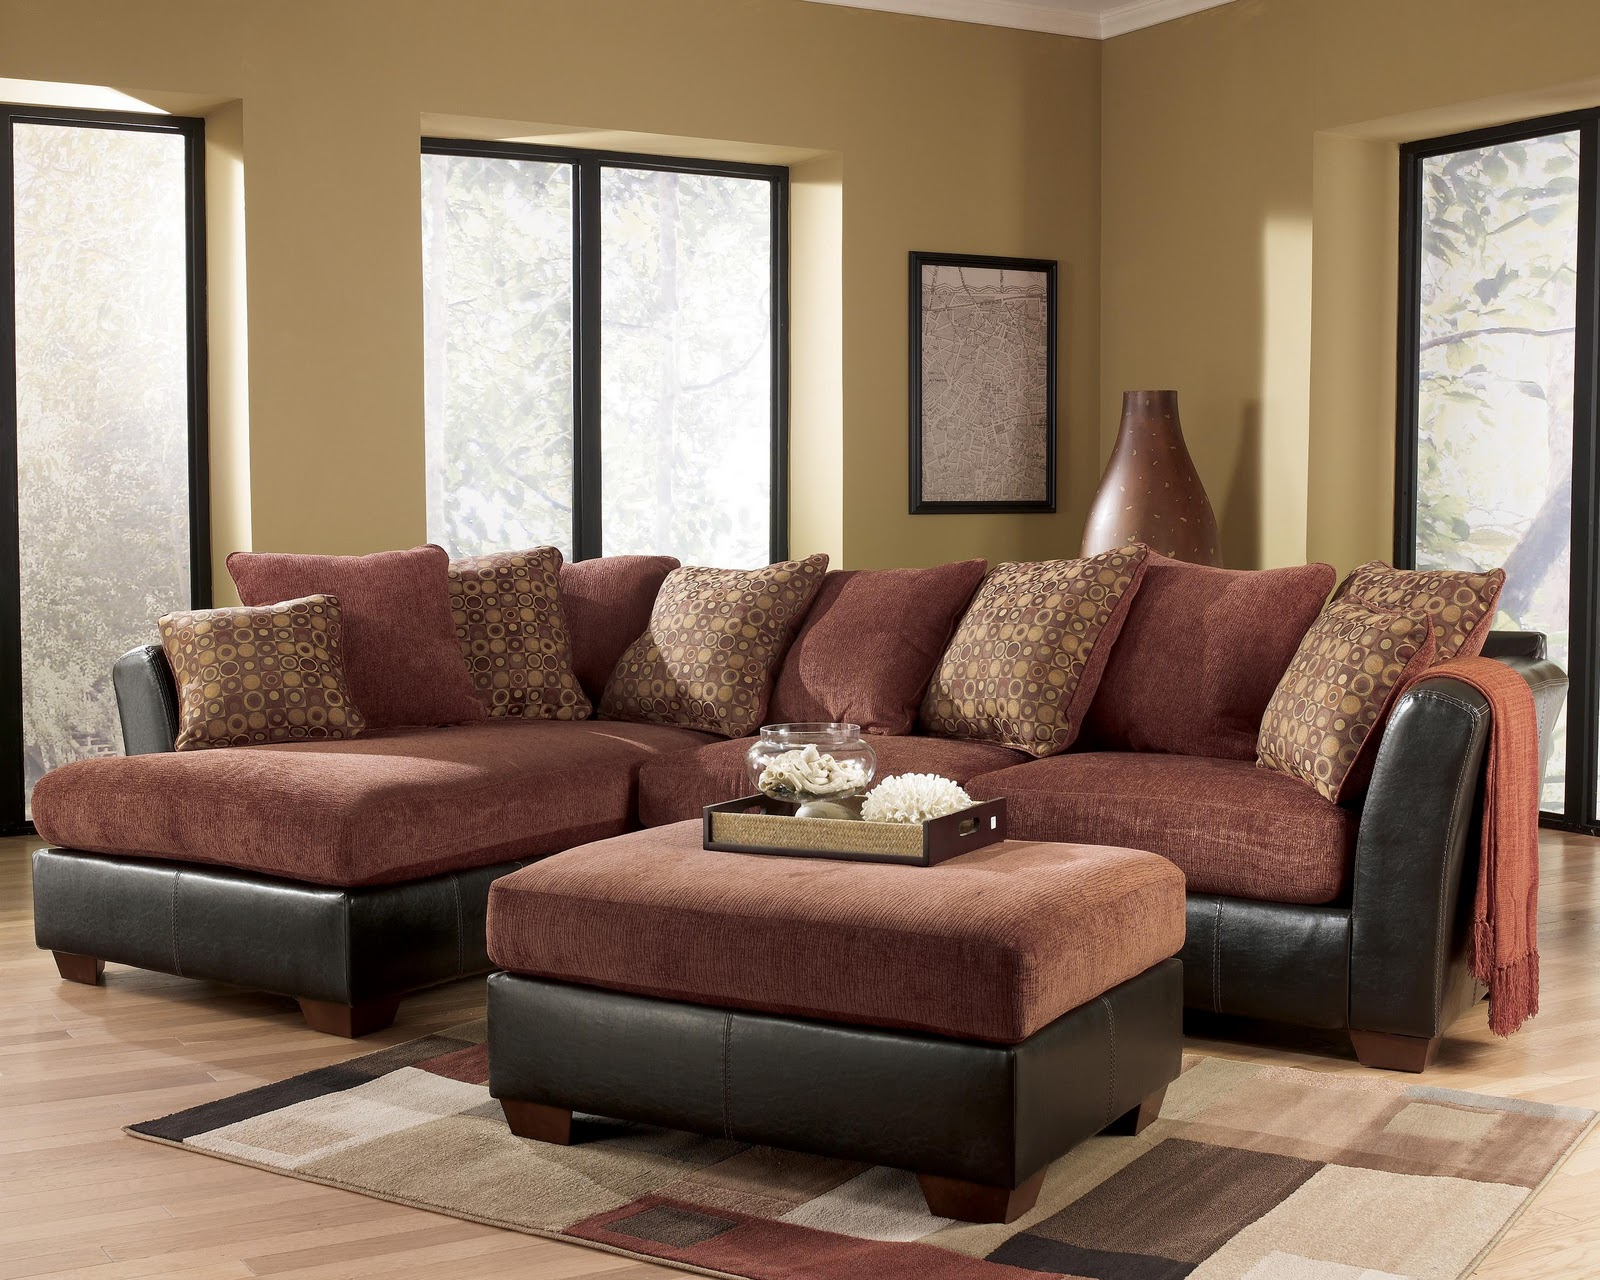 Ashley Furniture U2013 Larson 31400 Cinnamon Sofa Sectional U2013 Royal Furniture  Outlet U2013 215 355 2880 U2013 SPOTLIGHT ITEM